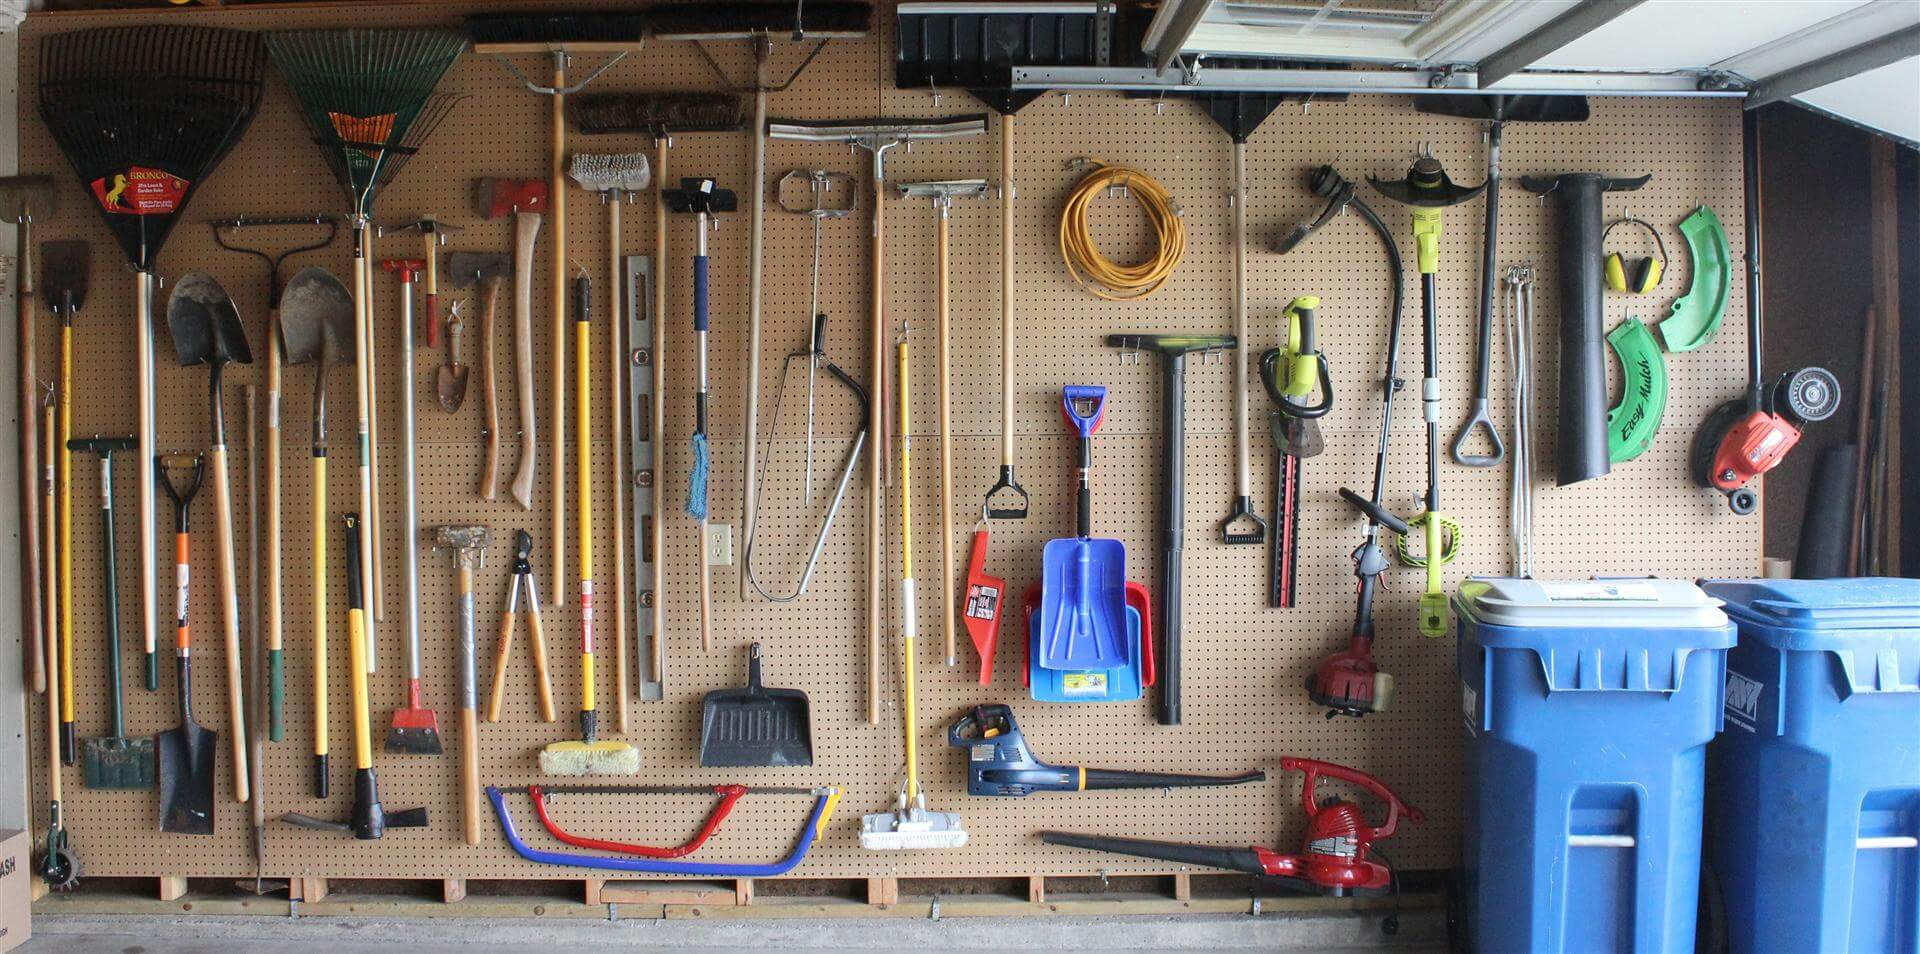 Uncategorized How To Hang Tools On A Pegboard garage organization its tough to beat pegboard startribune com after pegboard